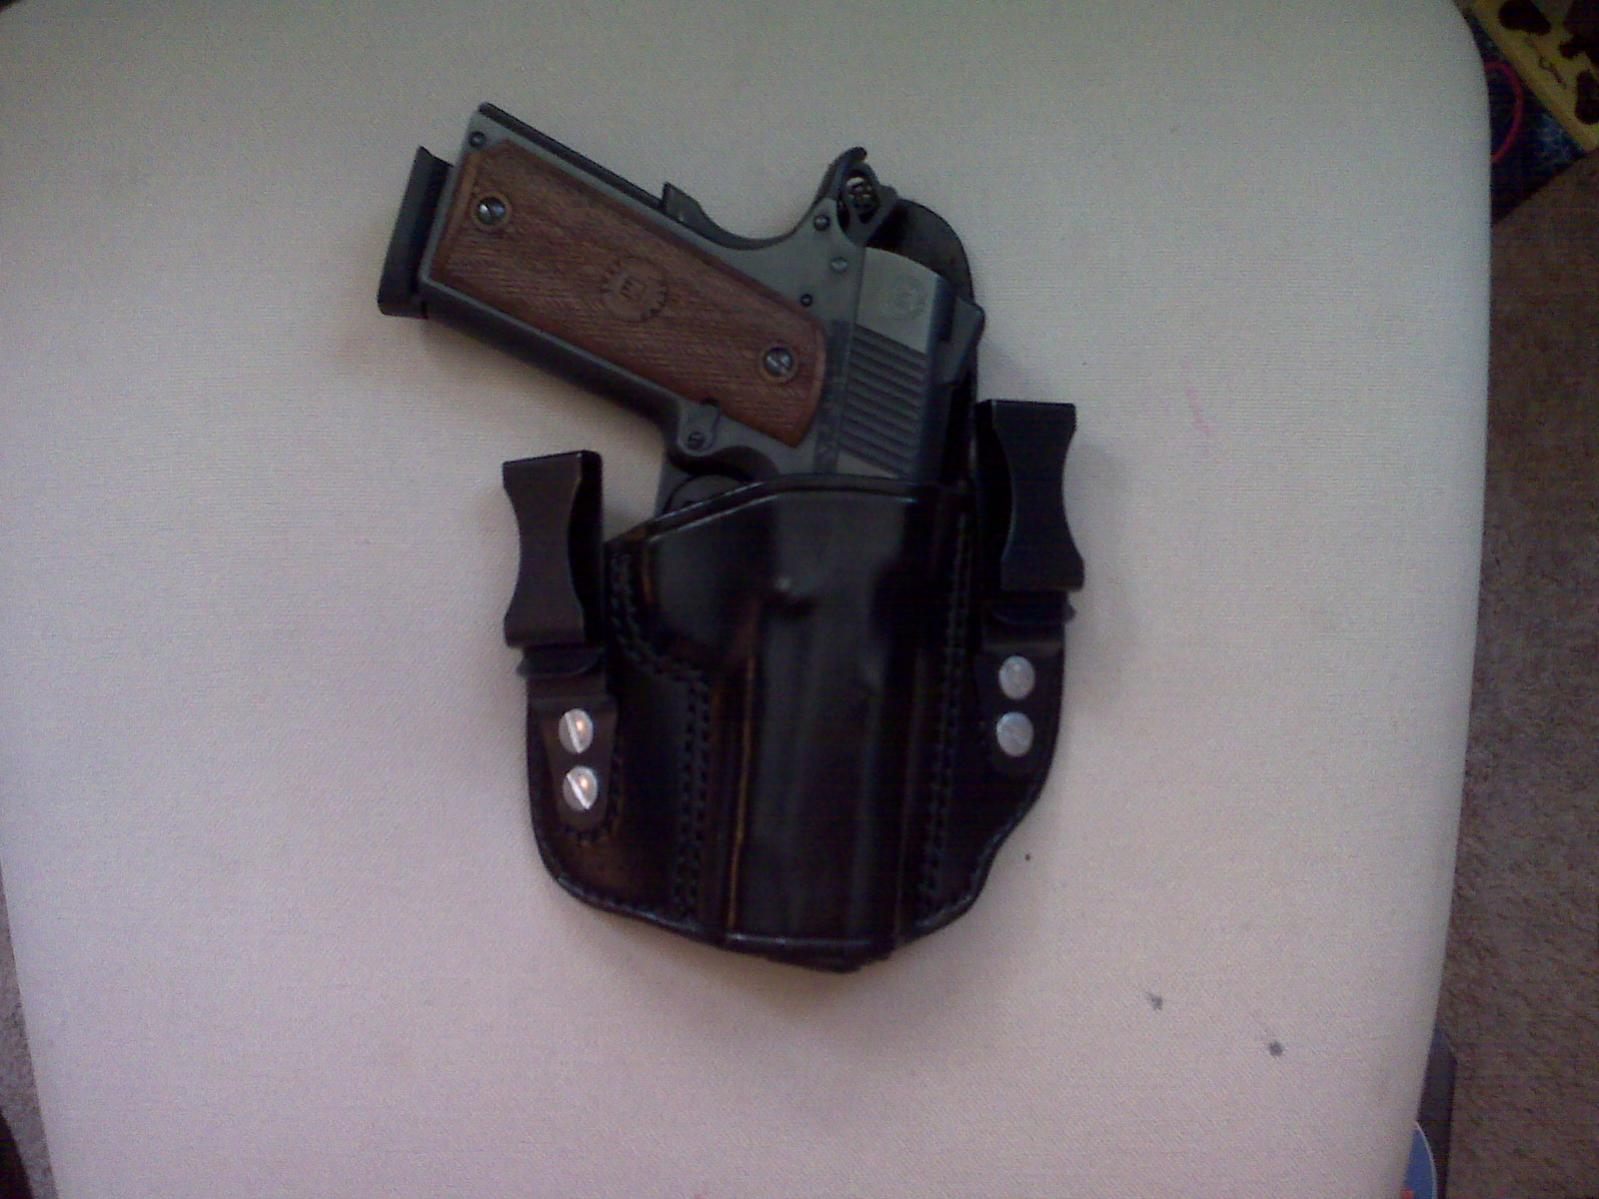 A big bad Tuckable IWB 1911 list!  I figured out which one I want, but hey-img00025.jpg